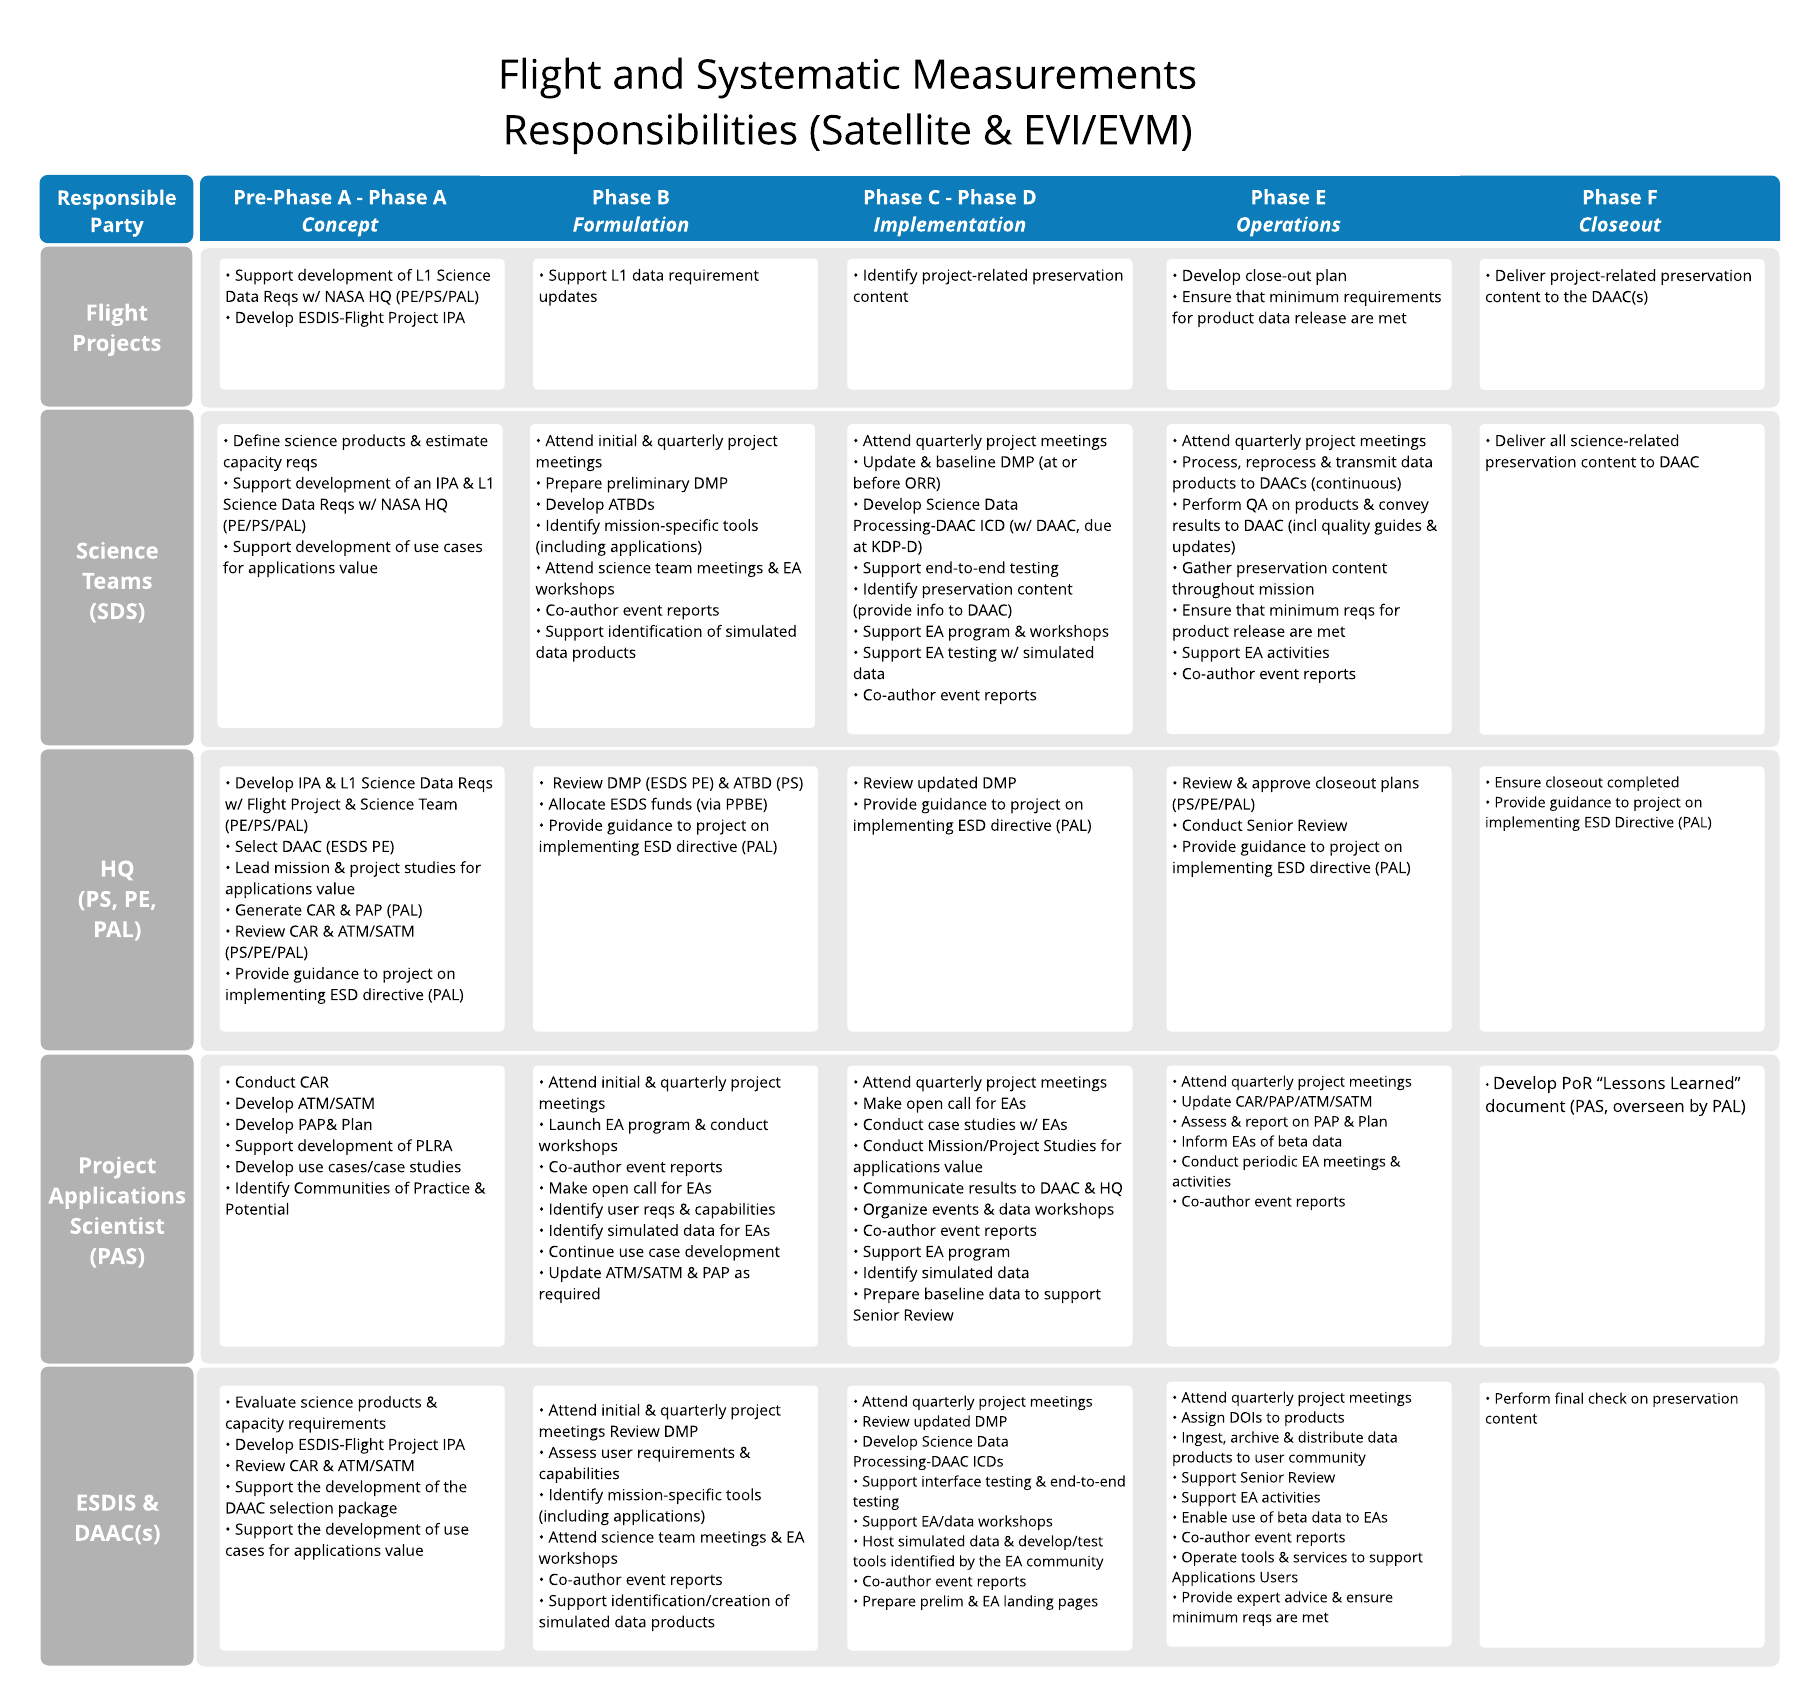 Chart showing data responsibilities for flight and systematic measurements from satellites and EVI/EVM.